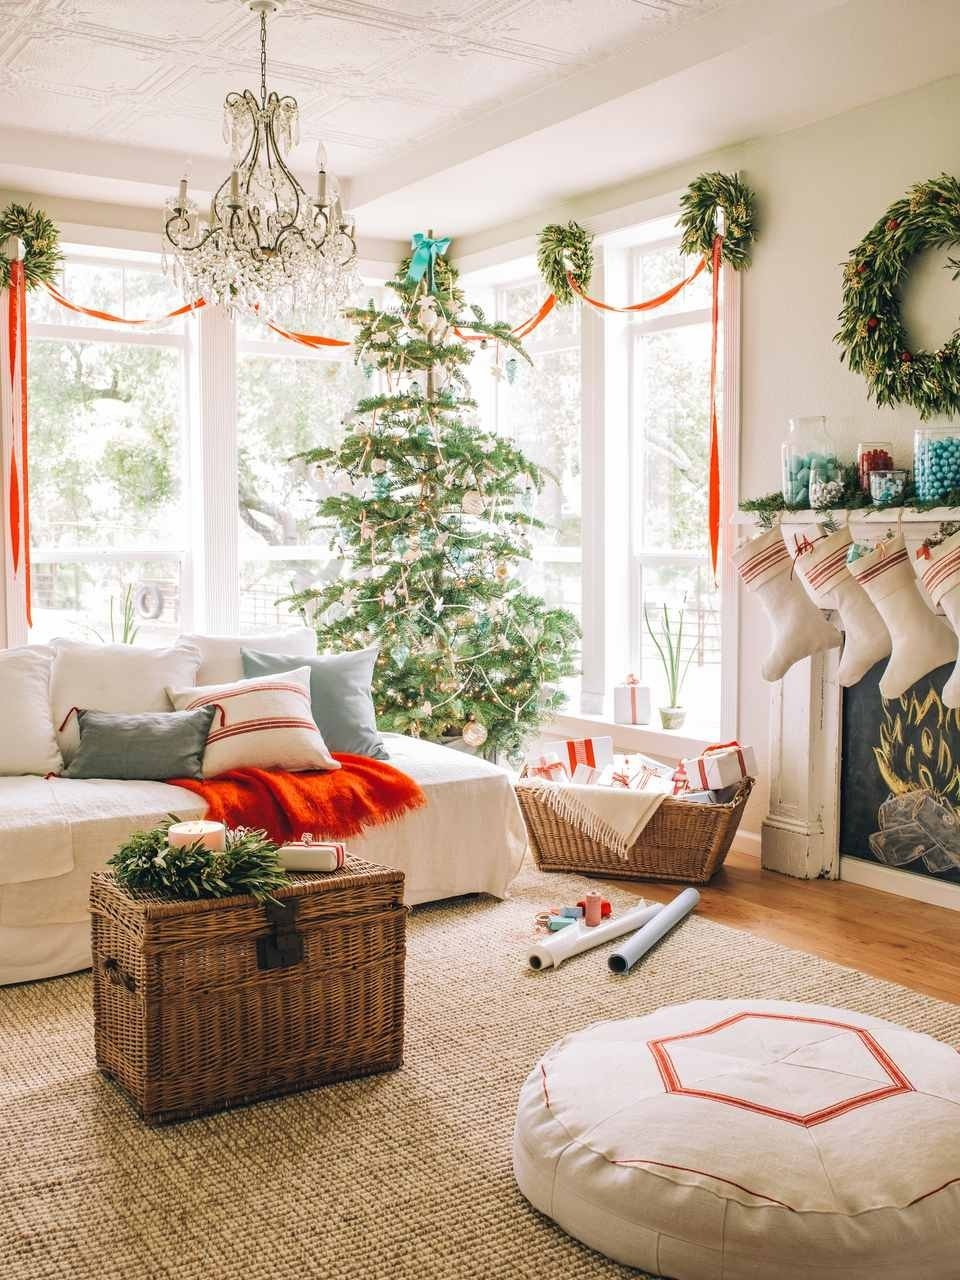 10 Pretty Christmas Decorations Ideas For Living Room 15 beautiful ways to decorate the living room for christmas 1 2021